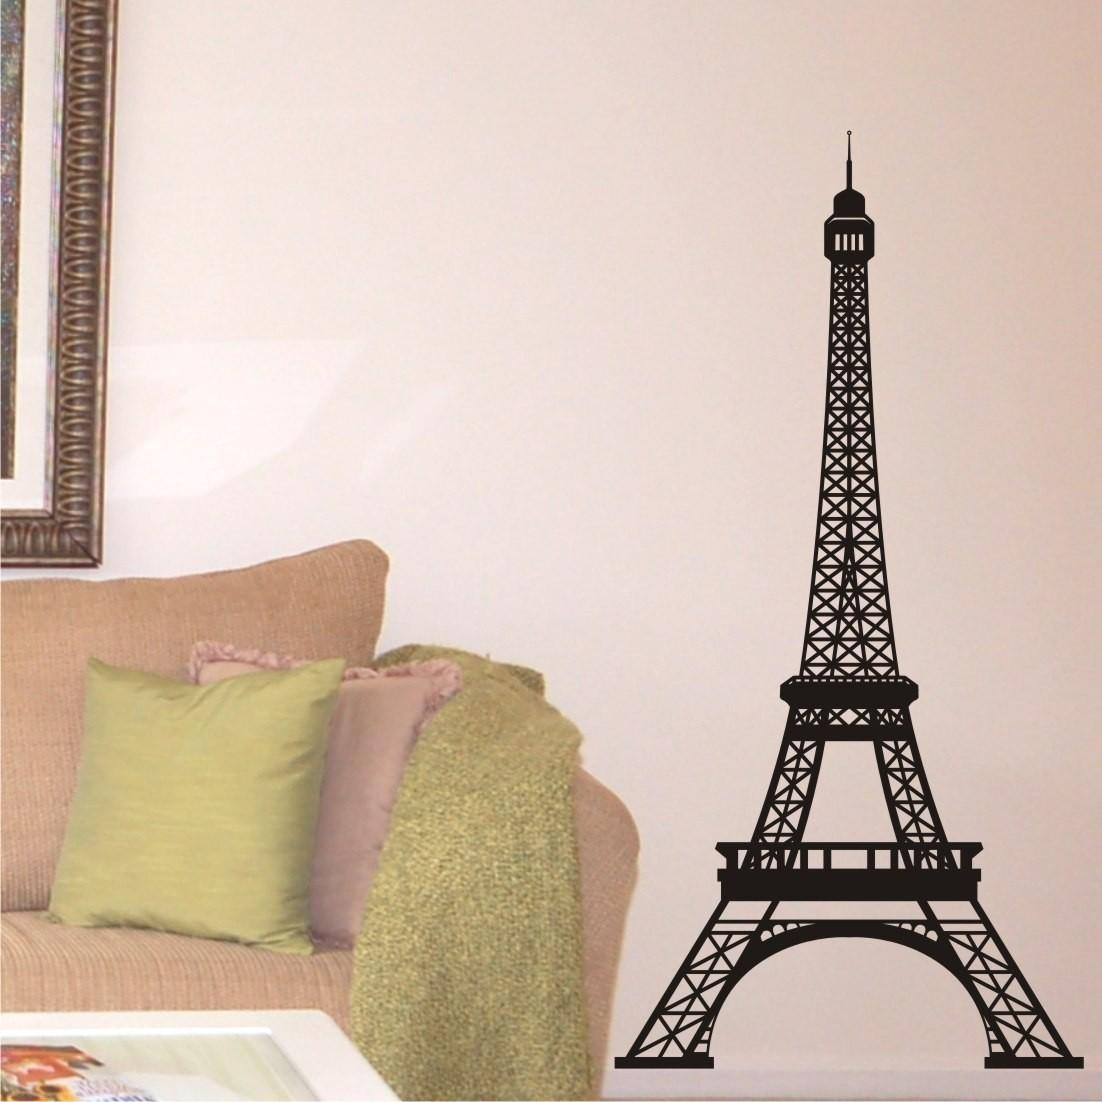 Wall Decor Eiffel Tower | New Interior Design Regarding Eiffel Tower Wall Art (Image 18 of 20)